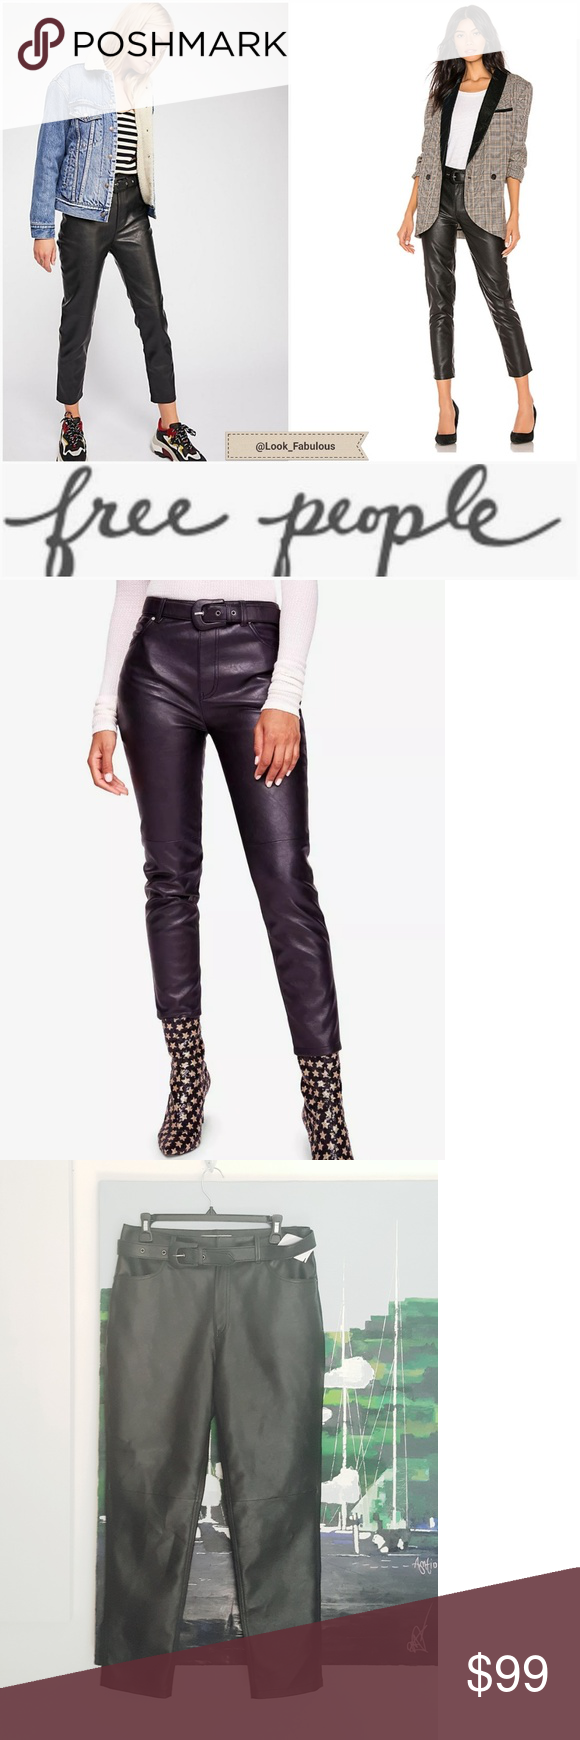 High Waisted Vegan Leather Ankle Leggings In 2020 Ankle Leggings Vegan Leather Leggings Are Not Pants